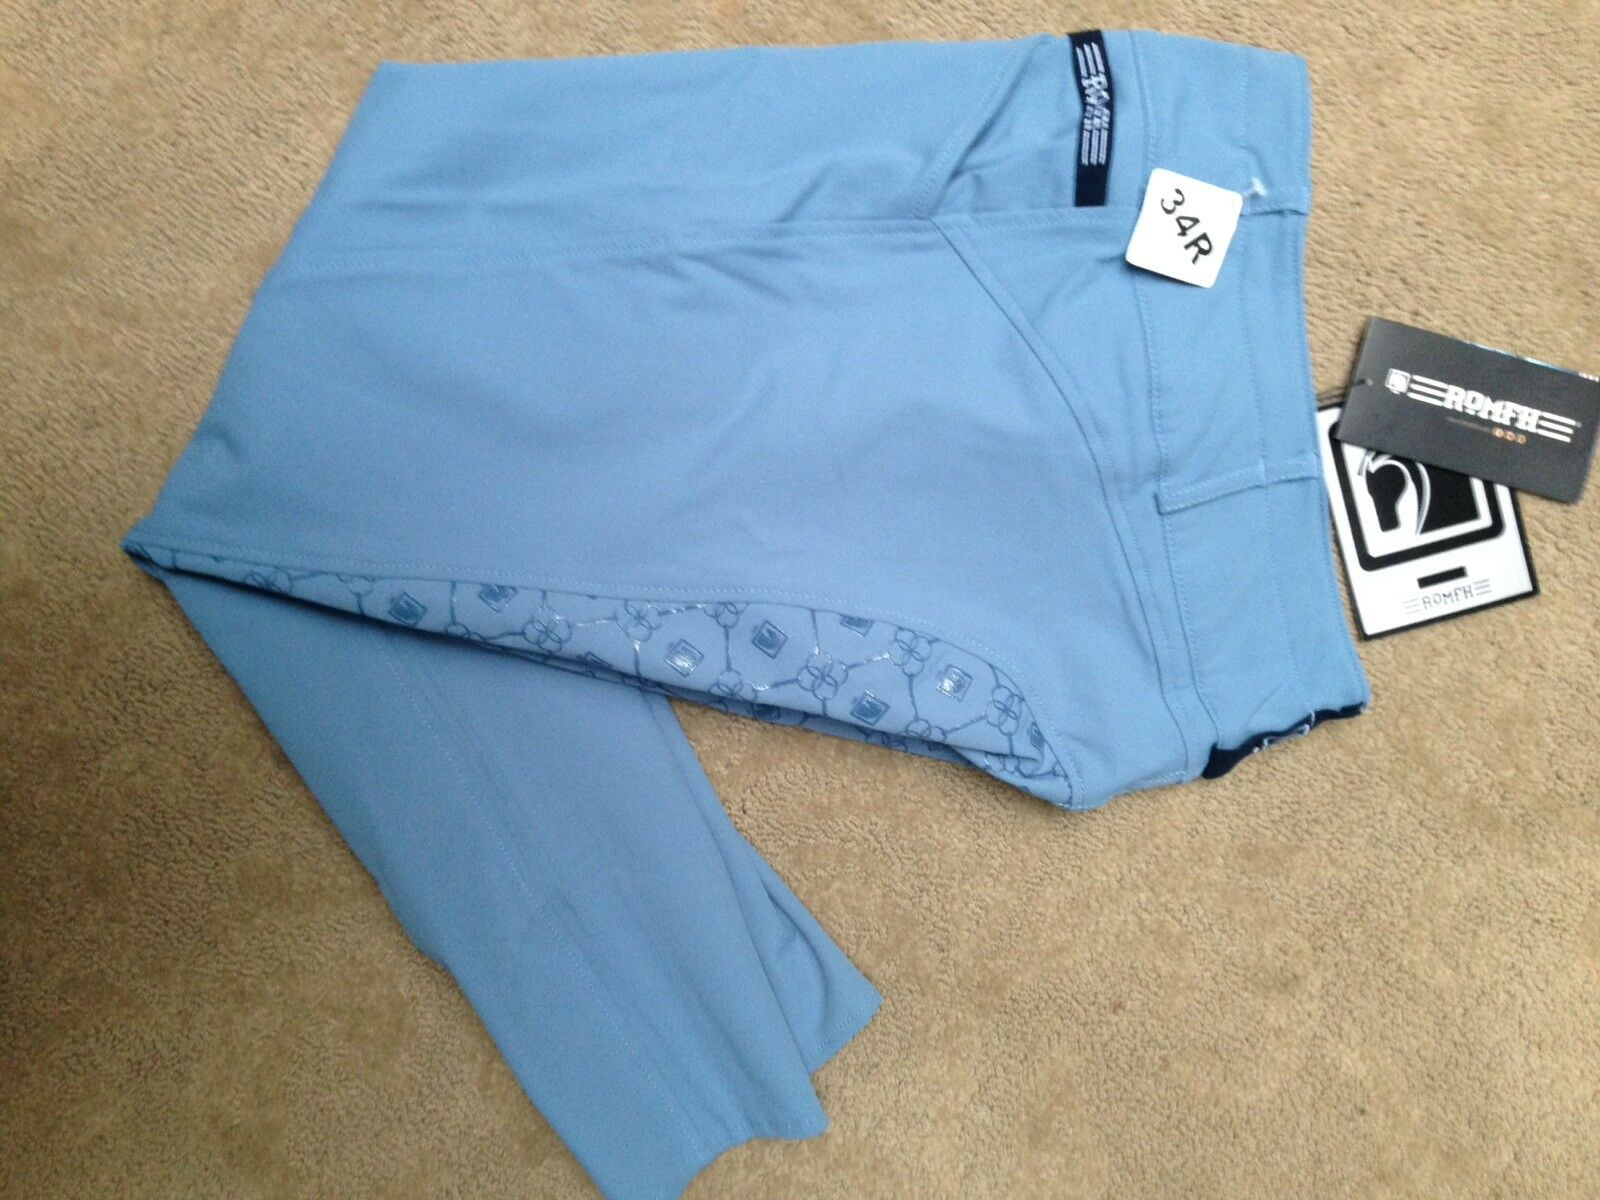 New Romfh Isabella  Full Seat Breeches 34R  cheap and fashion